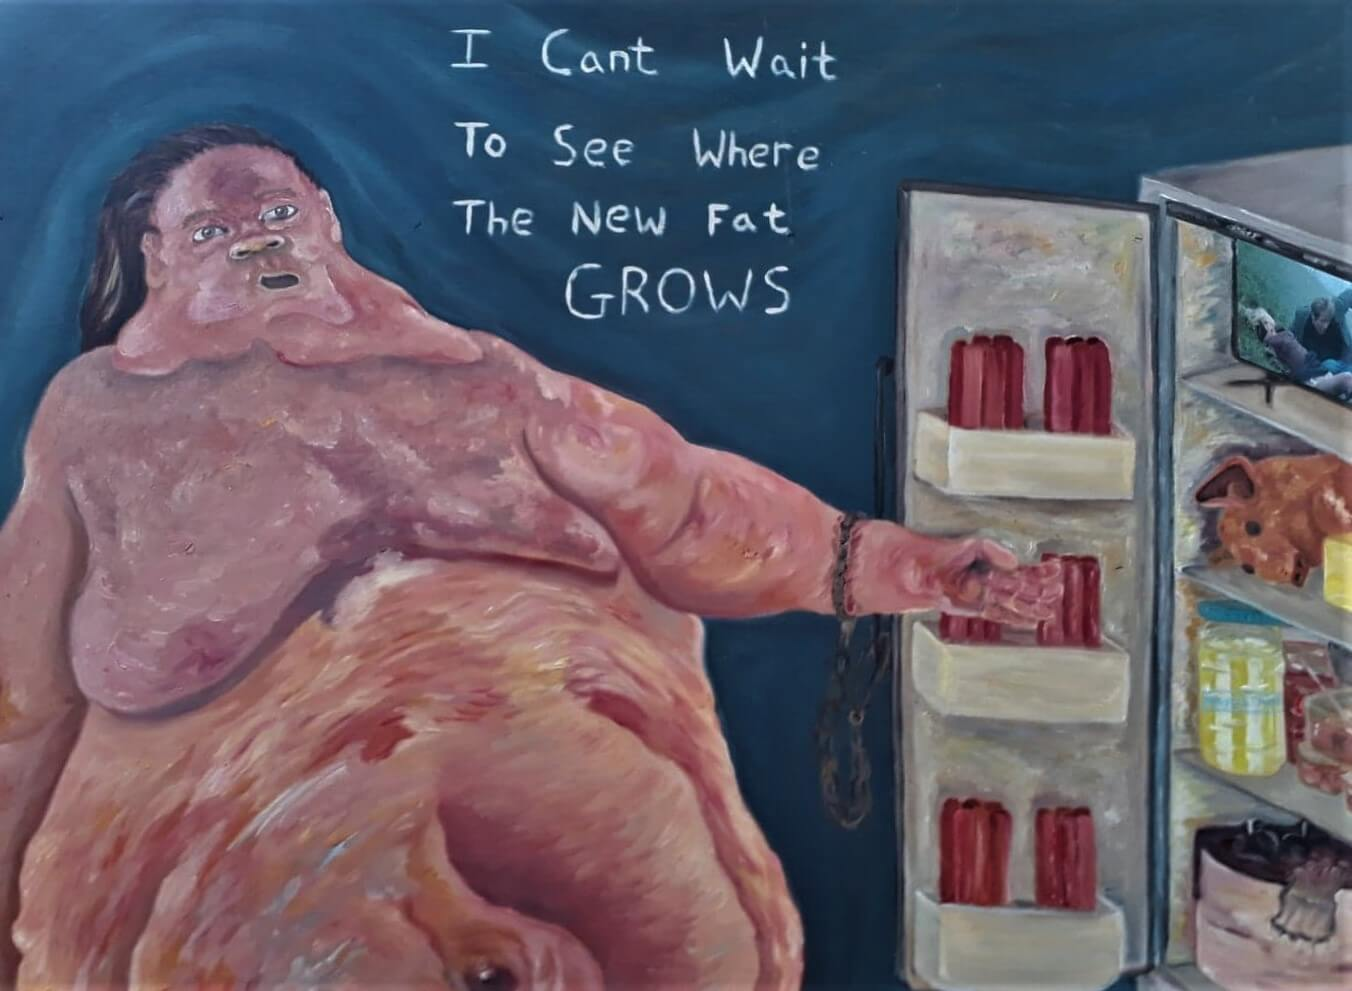 Michael Hanrahan shows the absurdity of the day-to-day | Art Plugged